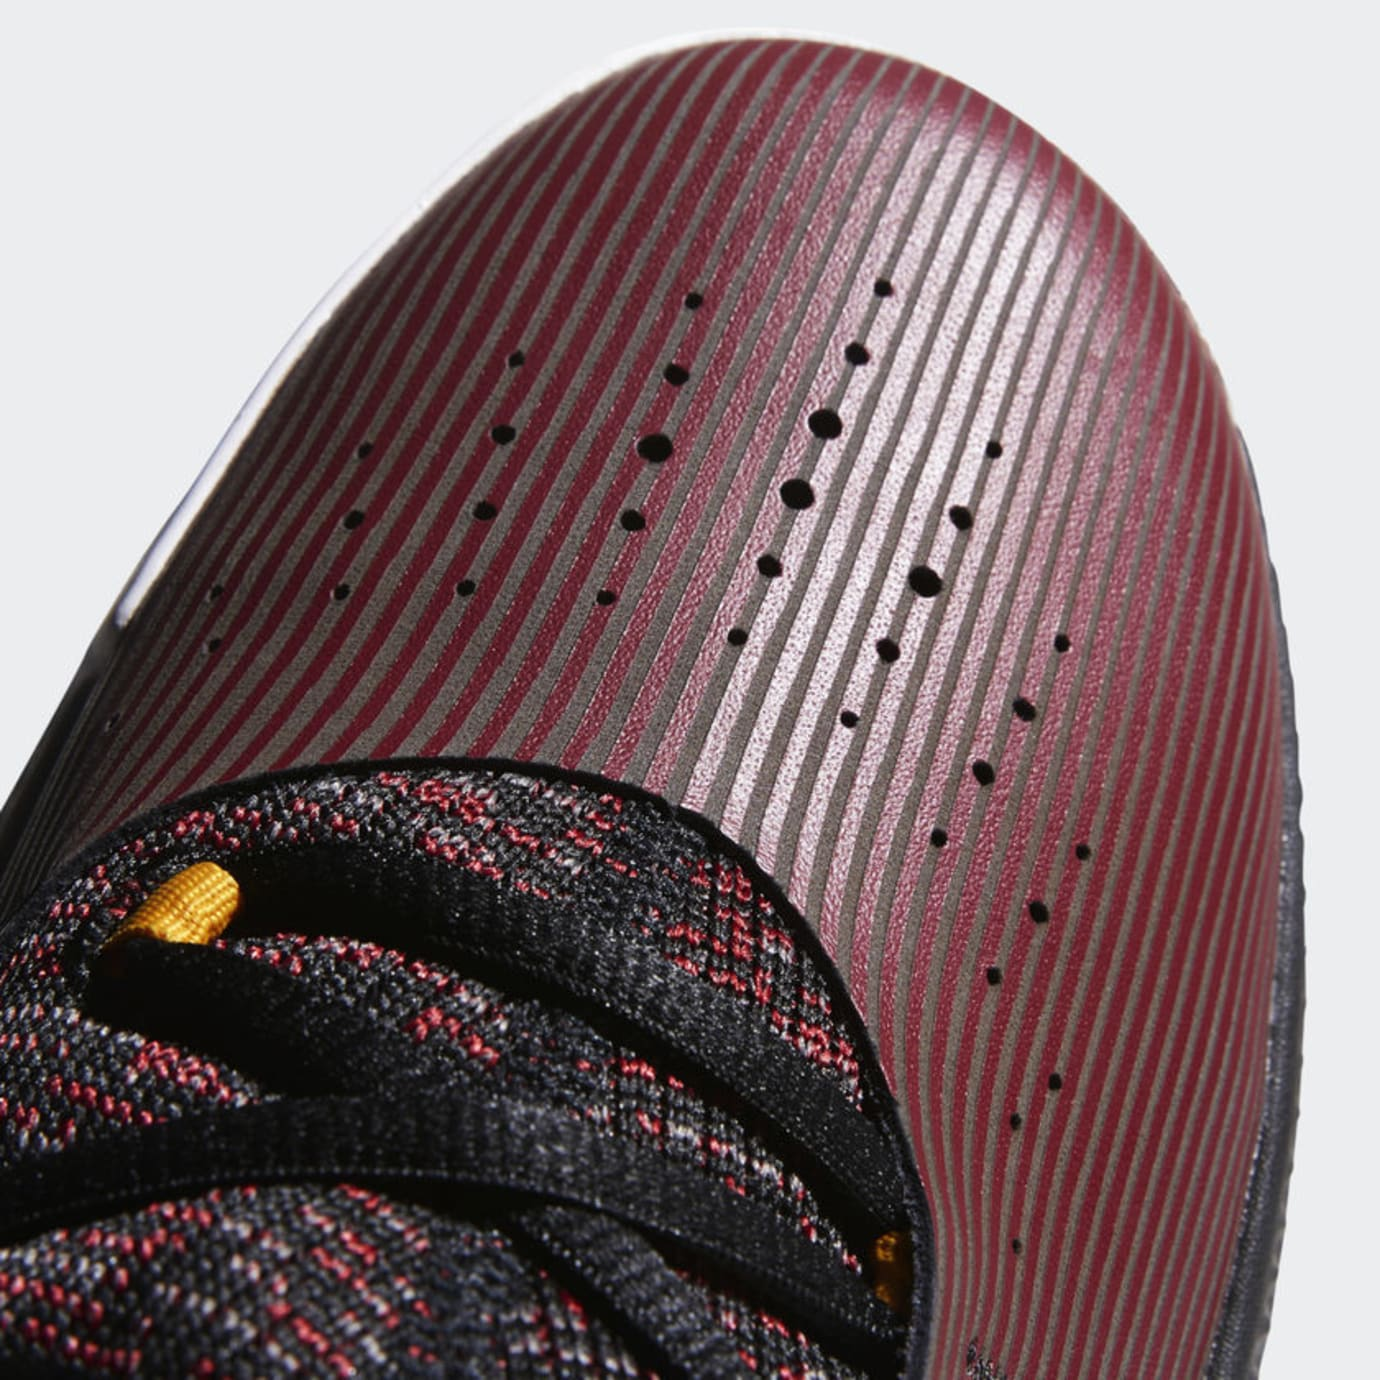 Adidas James Harden Pensole Academy B96346 (Detail 2)